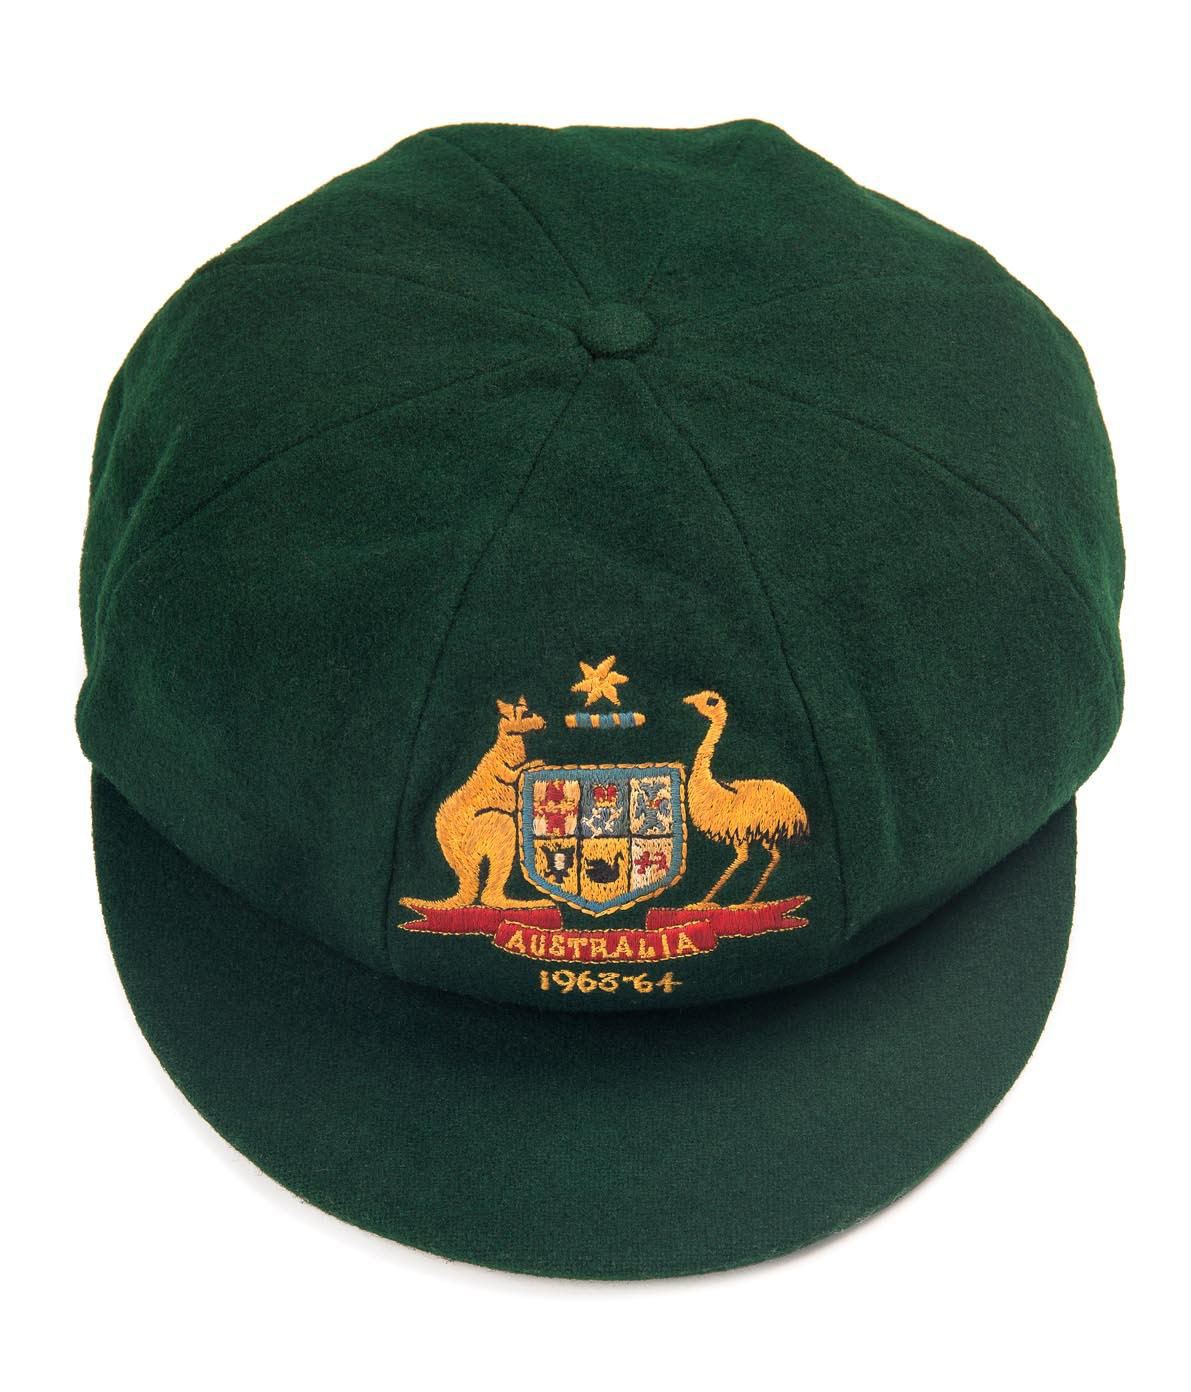 Demand for sporting memorabilia is stronger than ever and Mossgreen's first auction of this type for 2016 is a great example. To be held on February 8 at 926-930 High Street Armadale, the auction features the Australian baggy green Test caps from two former Australian captains – one belonging to the late Richie Benaud from his last Test series in 1963-64 against South Africa and the other to Ian Chappell from the 1973-74 series against New Zealand.